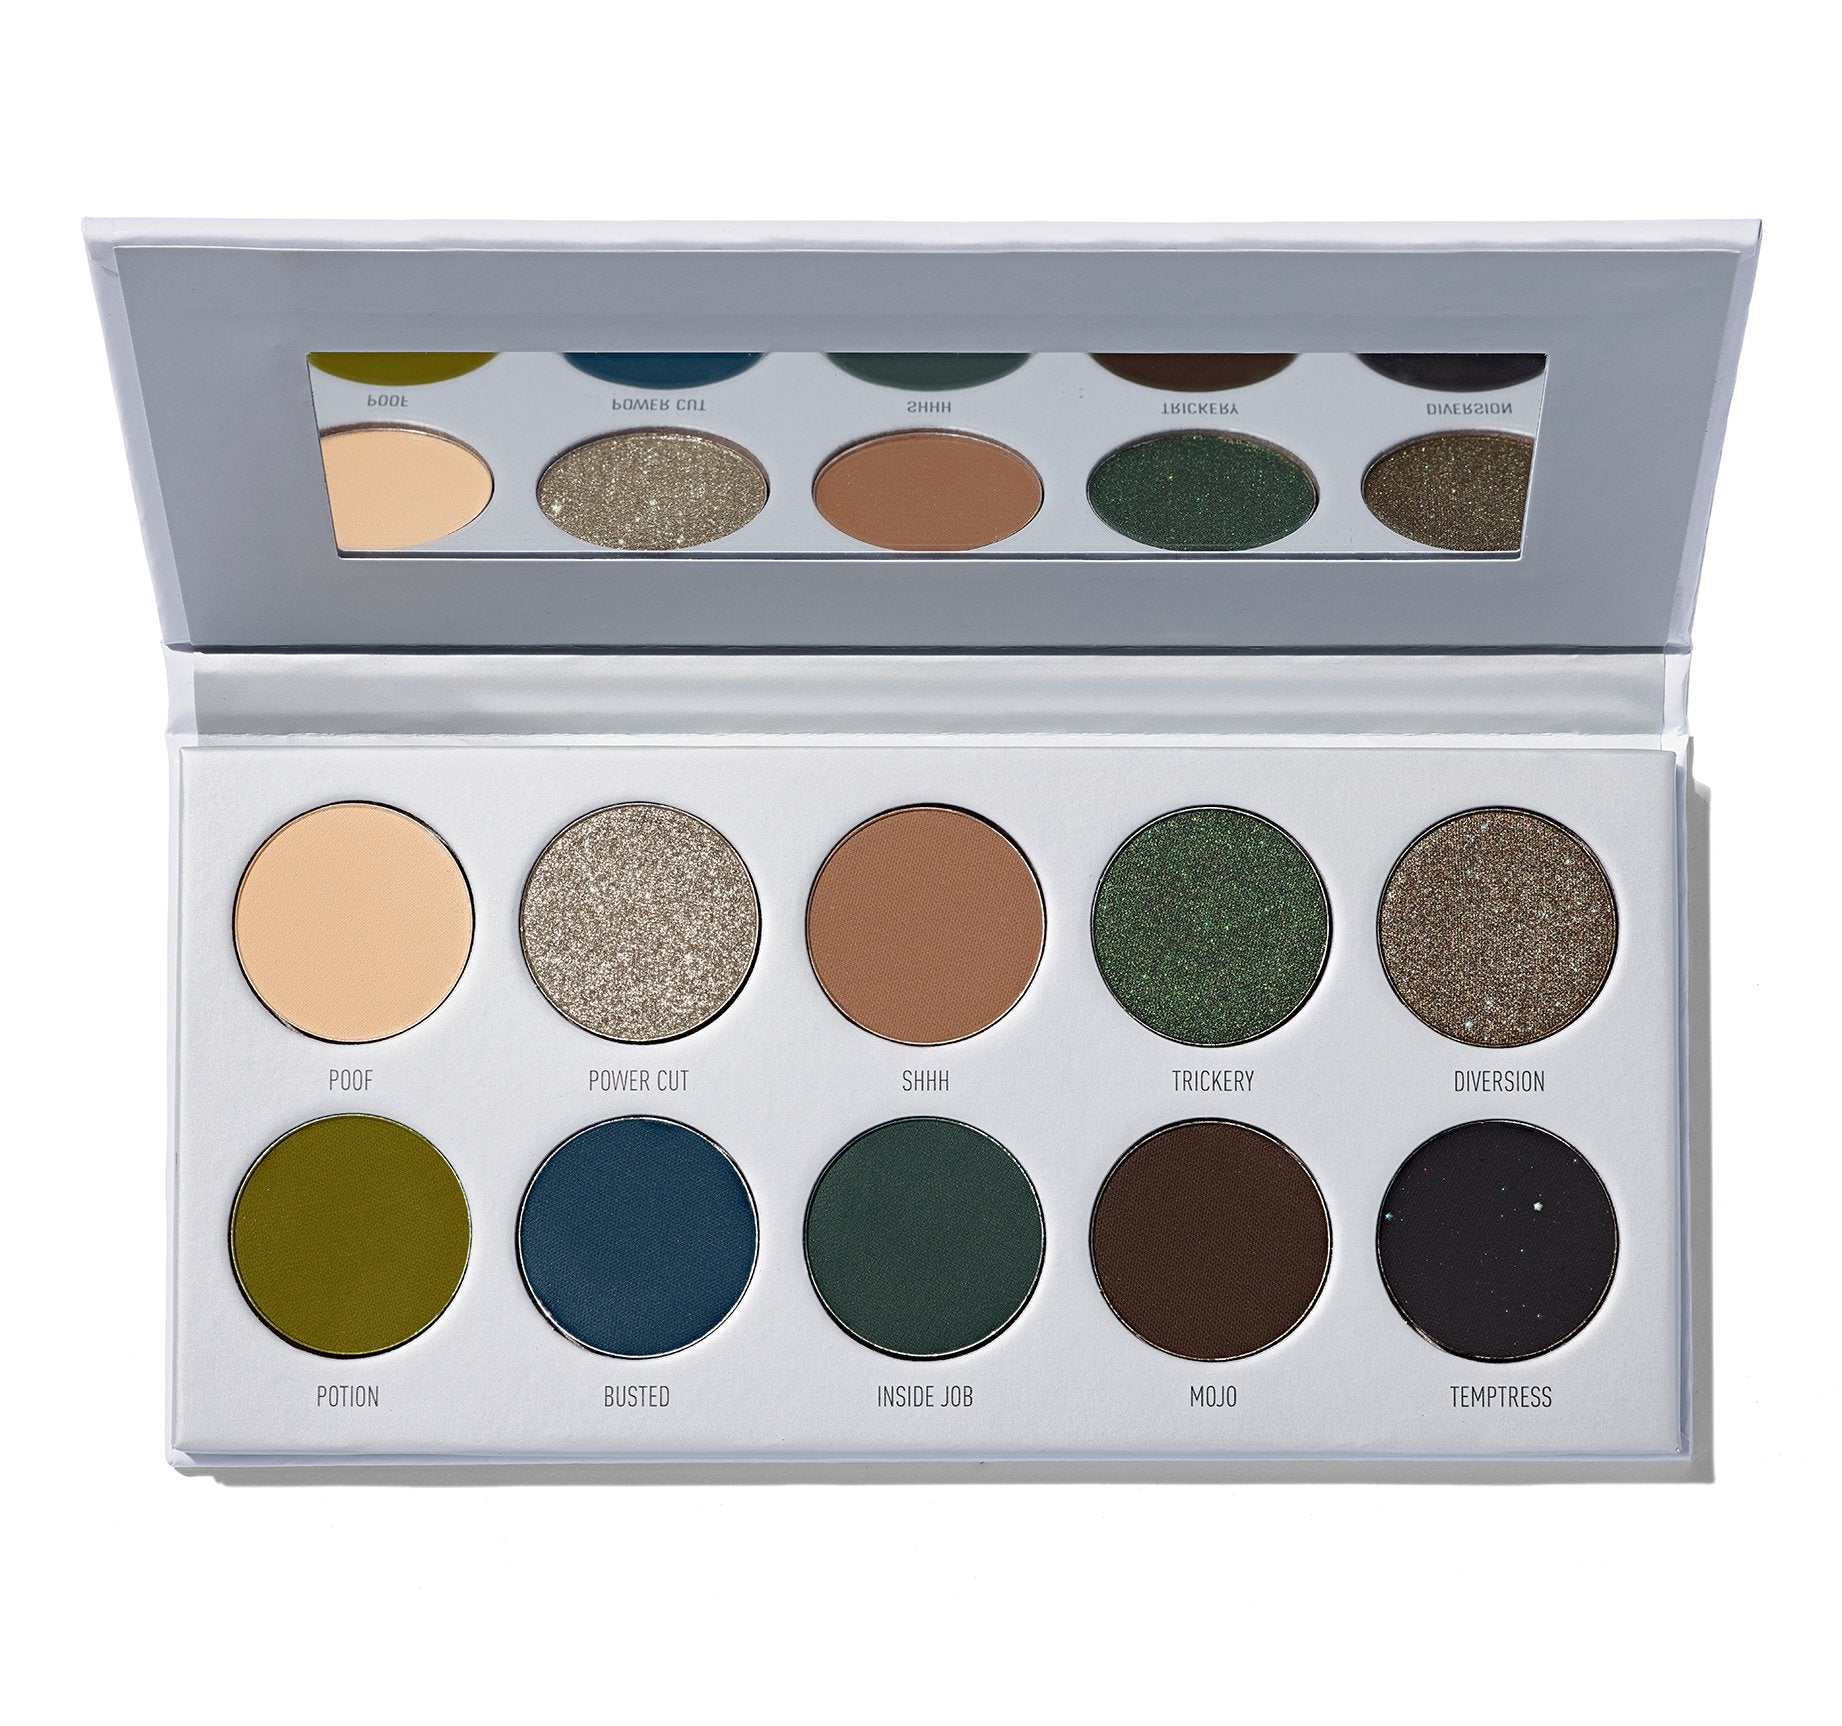 DARK MAGIC EYESHADOW PALETTE, view larger image